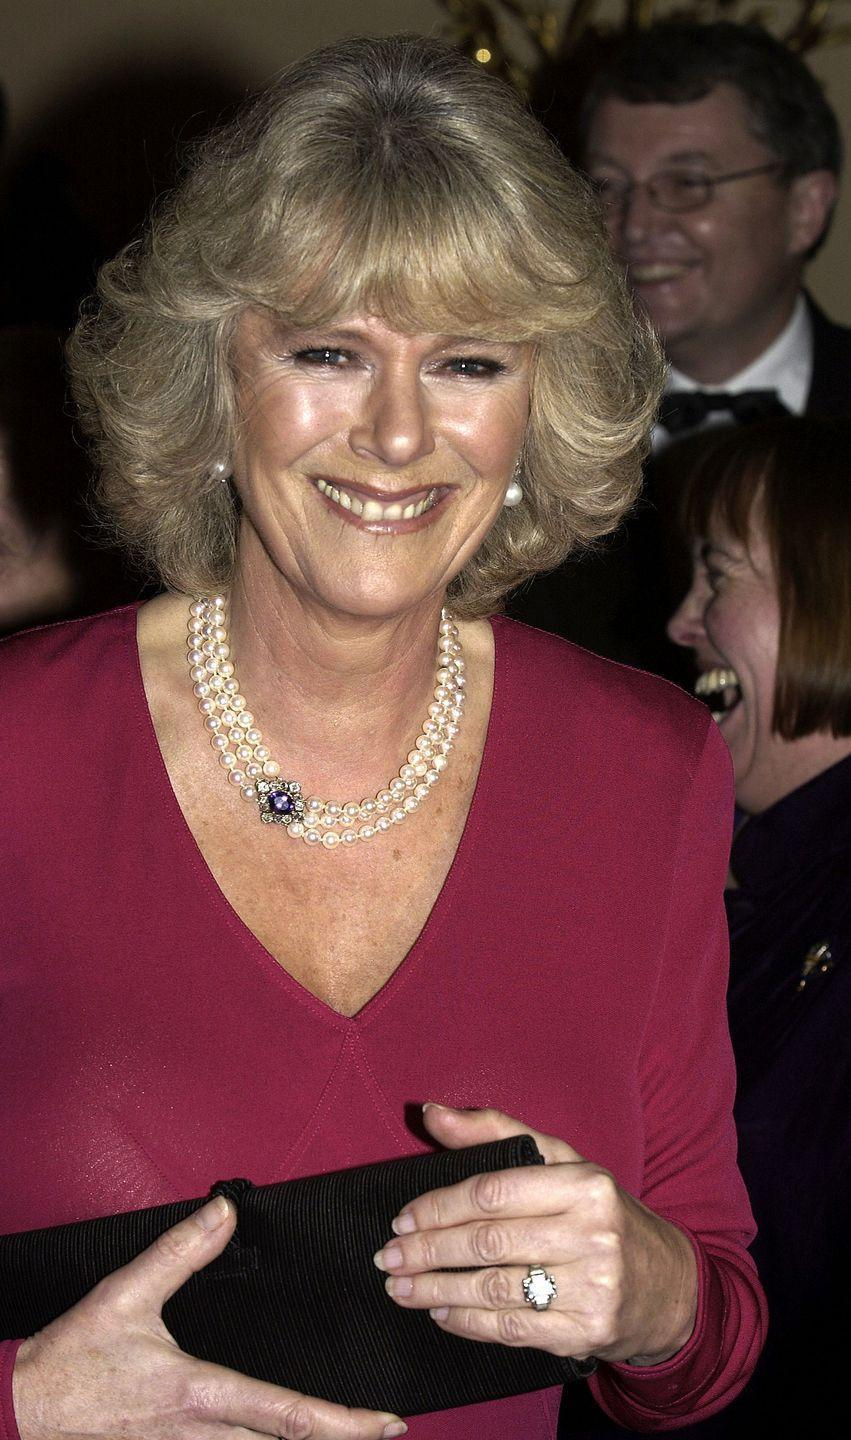 <p>Prince Charles proposed to Camilla with a diamond ring that was previously owned by his grandmother, the Queen Mother. It boasts a five-carat emerald-cut diamond in an Art Deco setting. It is believed to have been given to her after welcoming her first child, now the Queen.</p>